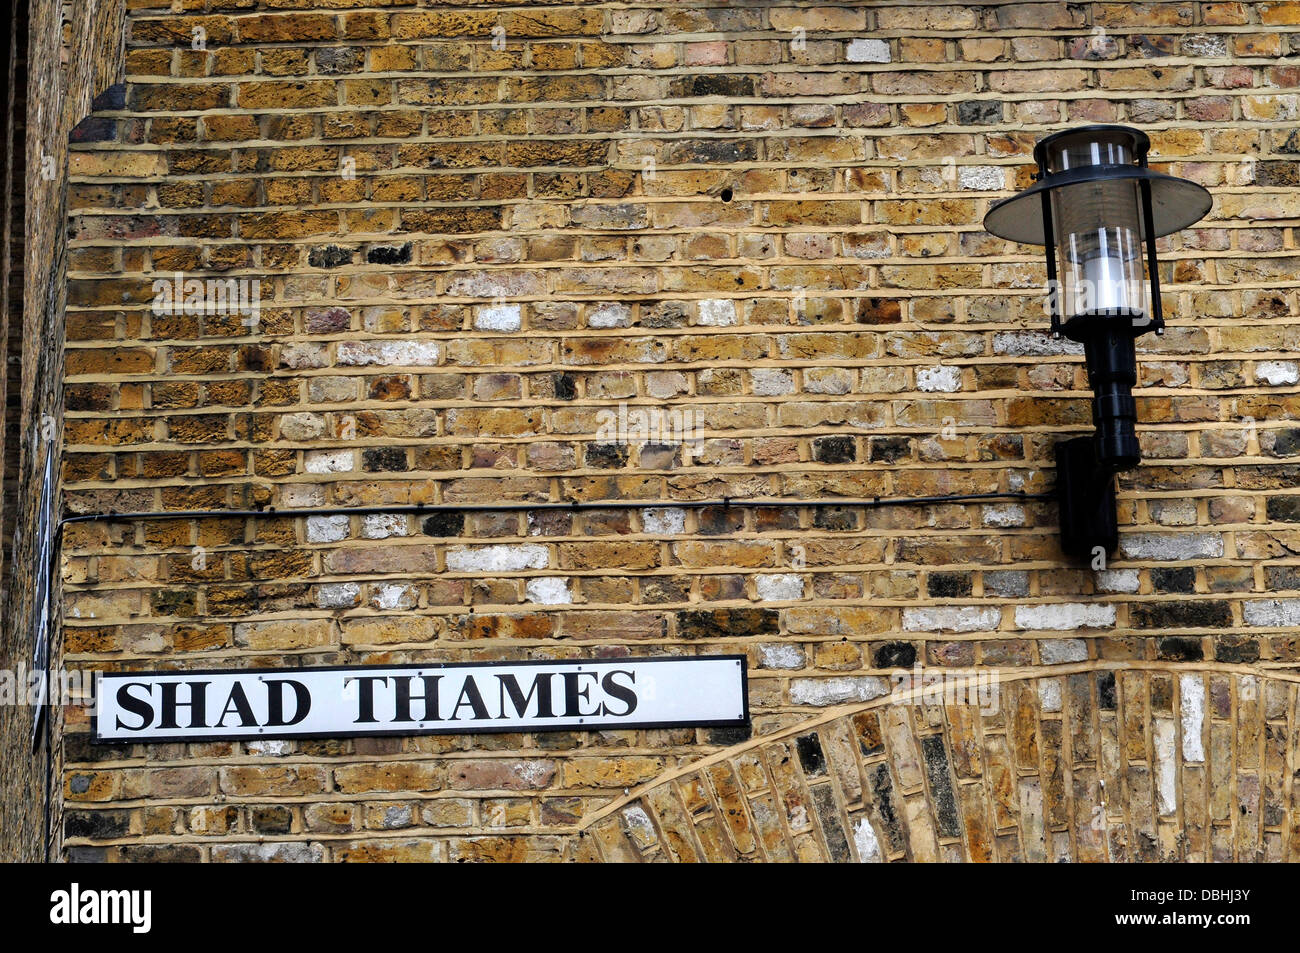 Shad Thames Street sign, London, UK - Stock Image